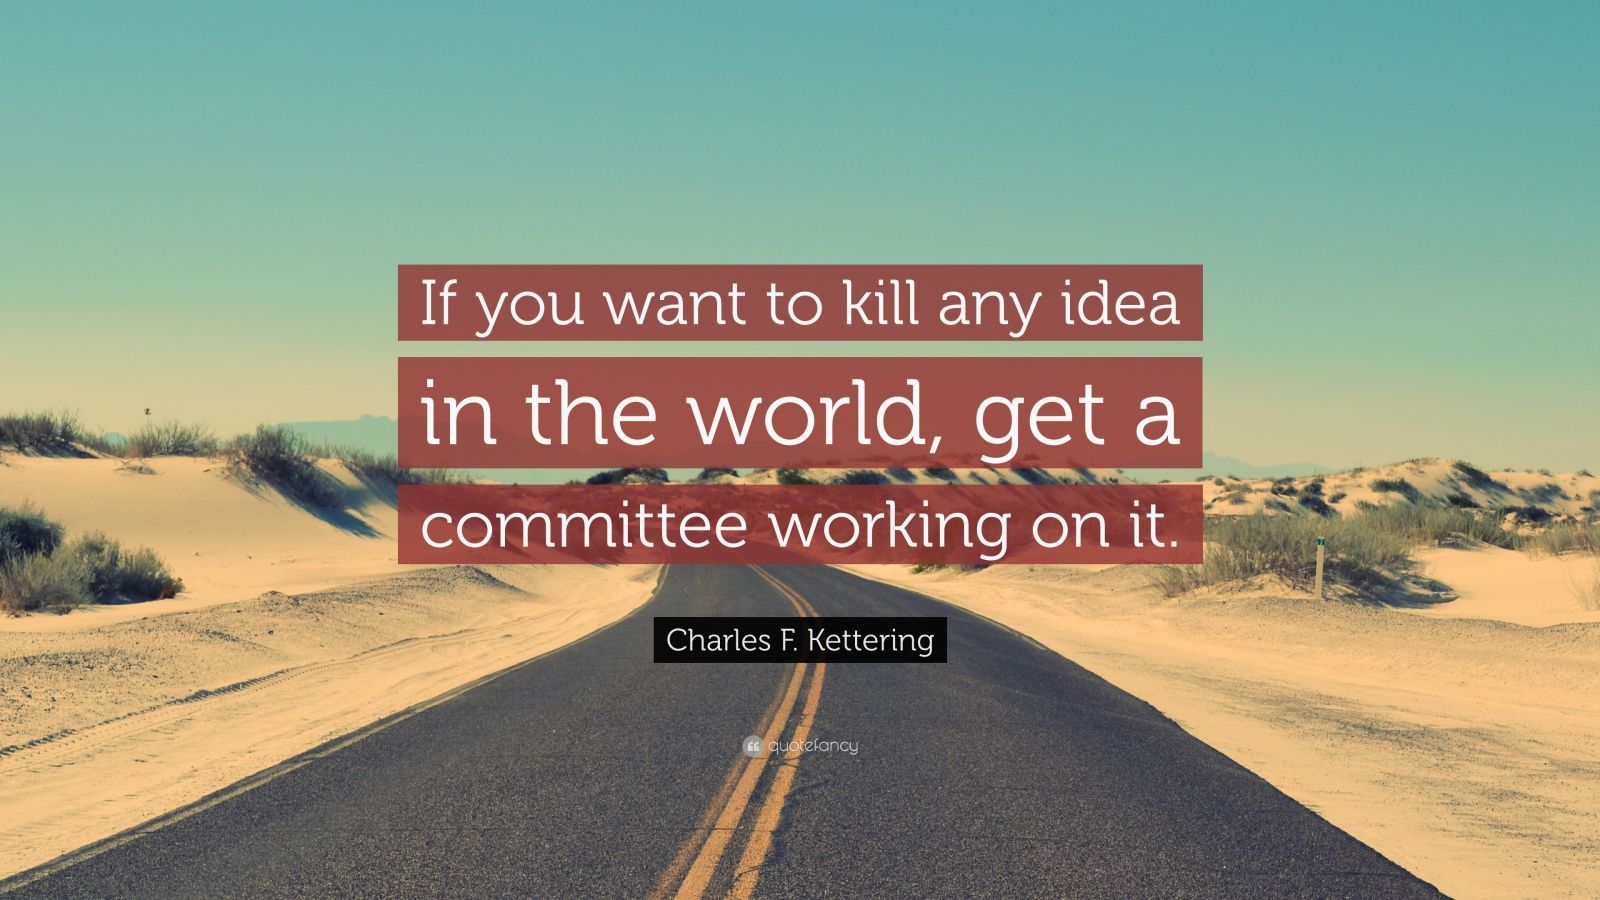 """Charles F. Kettering Quote: """"If you want to kill any idea in the world, get a committee working on it."""""""